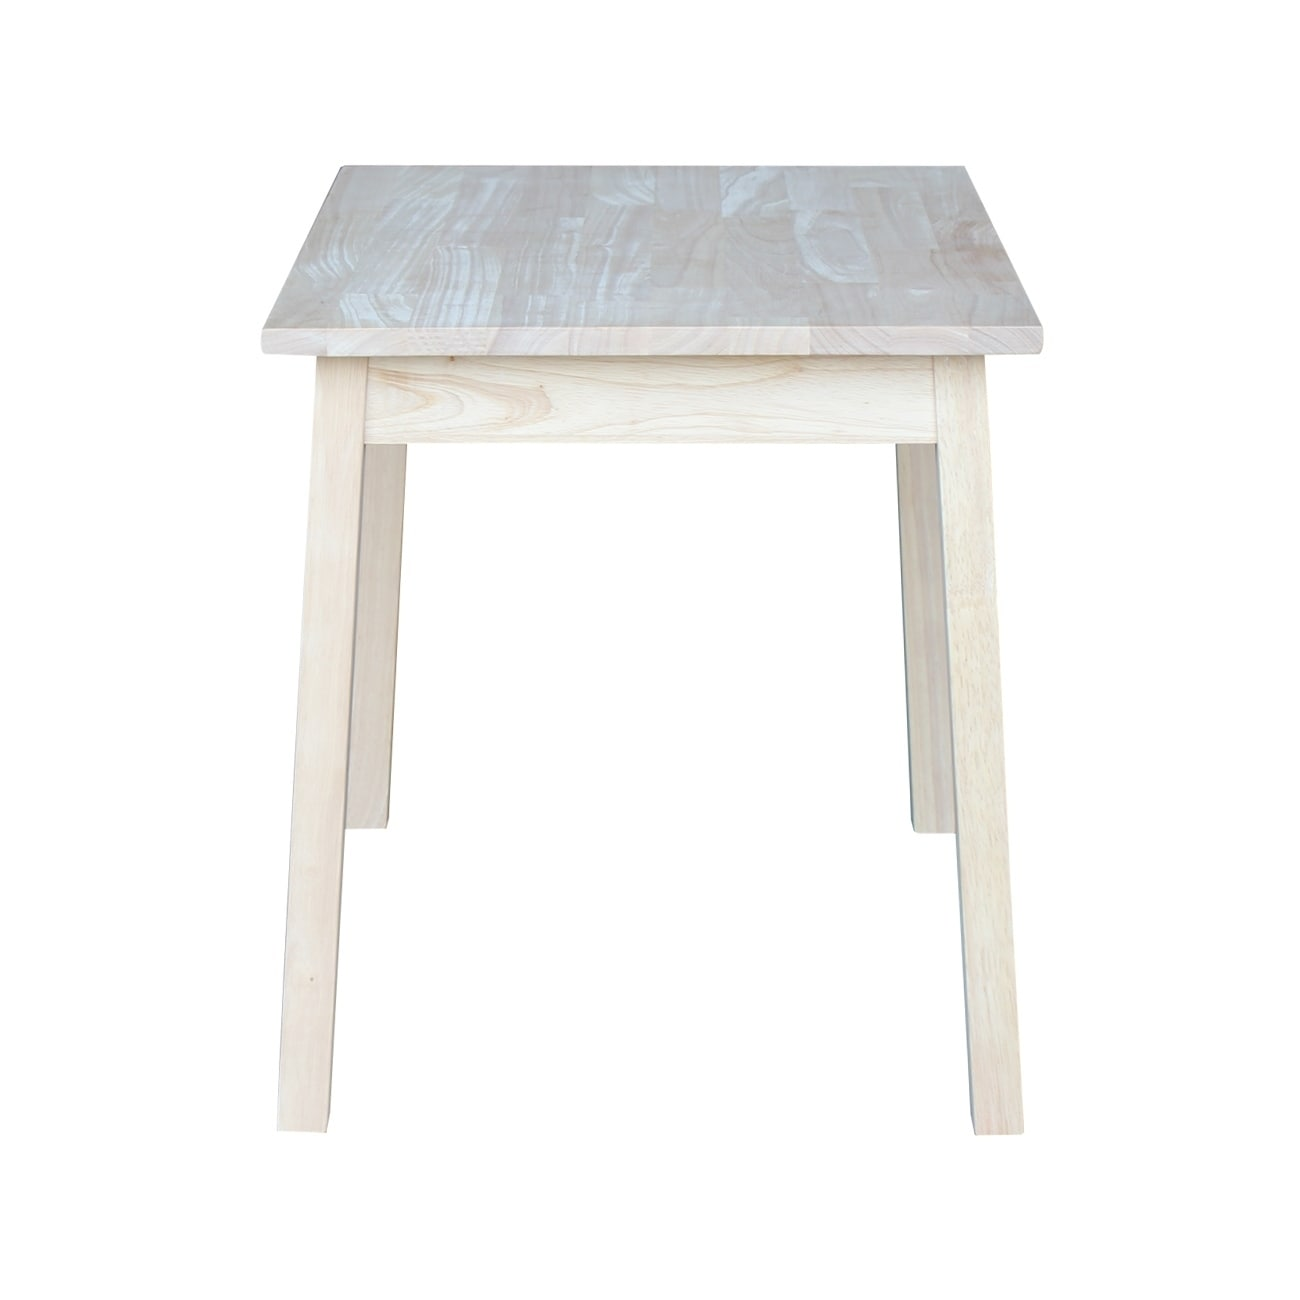 Shop unfinished wood childrens table free shipping today overstock com 9310502